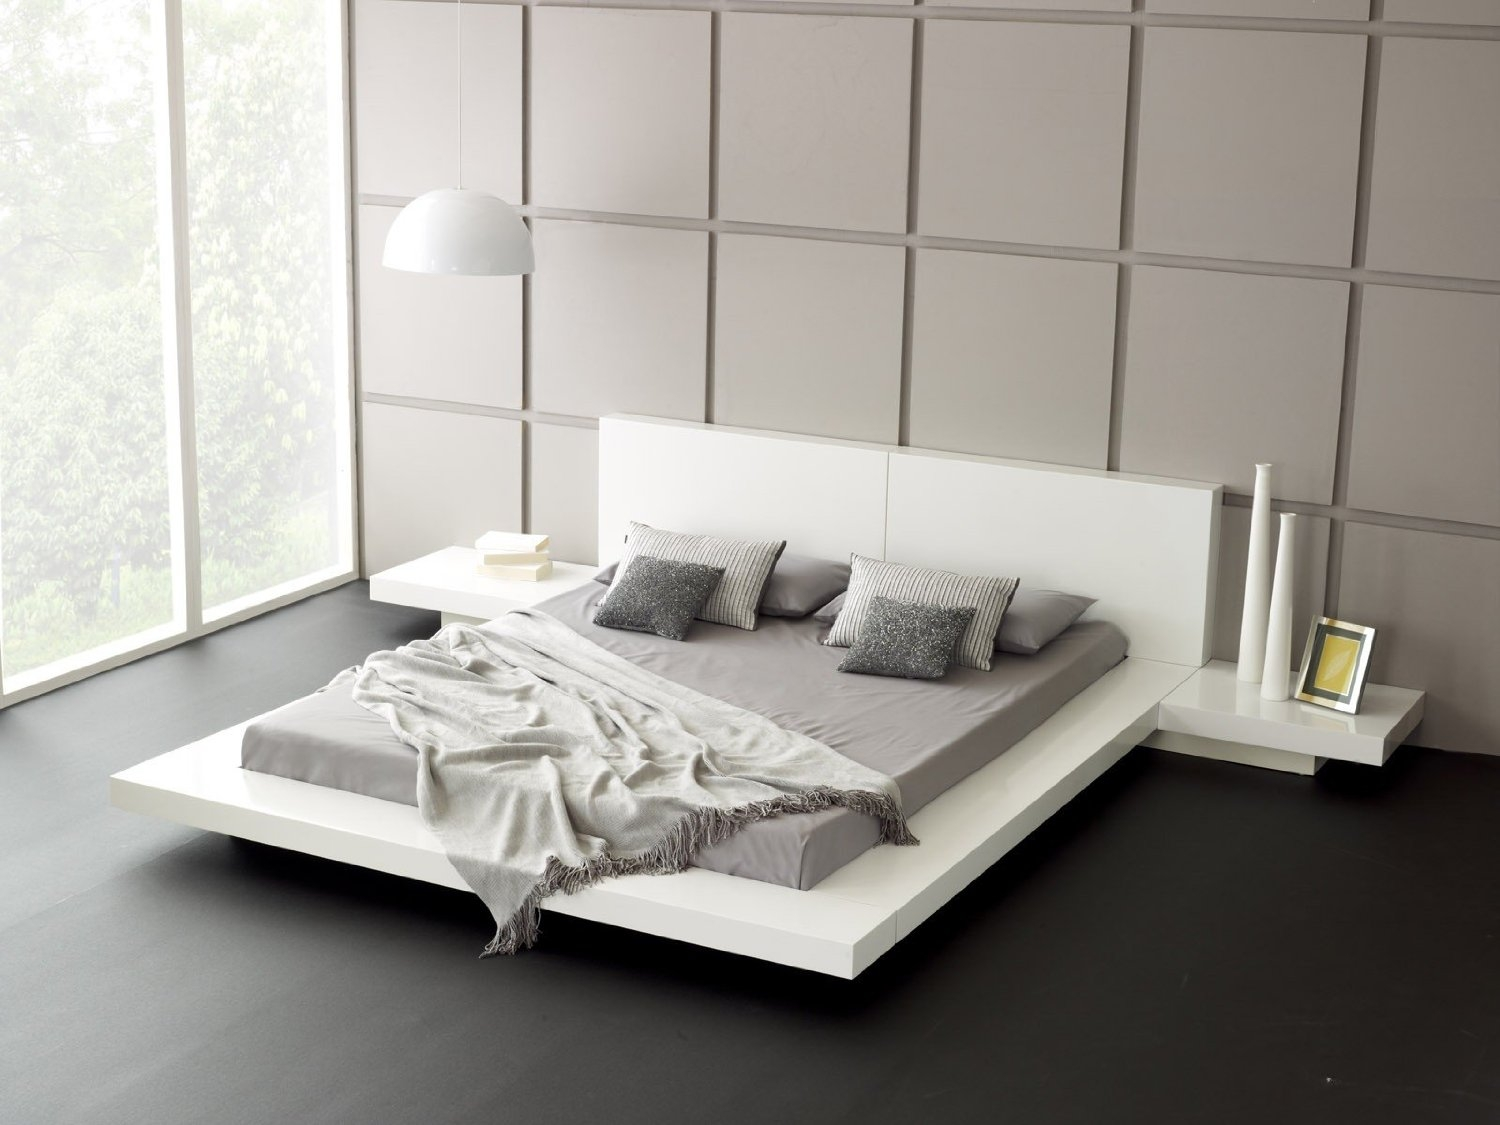 Queen Bed Frame Japanese Style